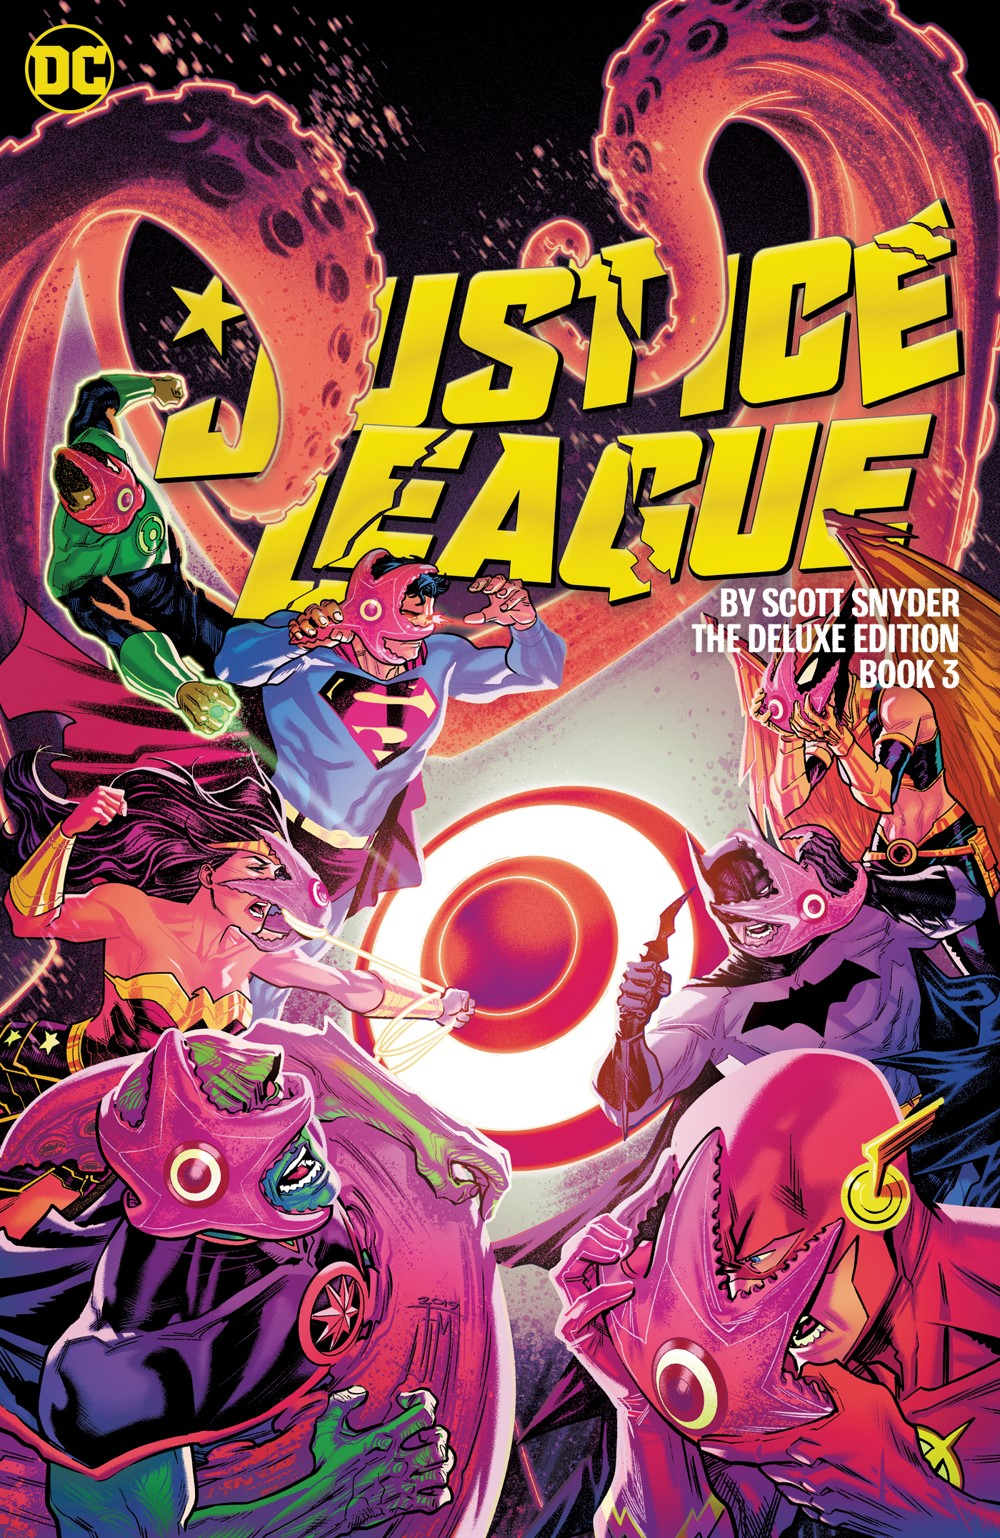 Justice-League-by-Scott-Snyder-Deluxe-Edition-Book-3 DC Comics November 2021 Solicitations